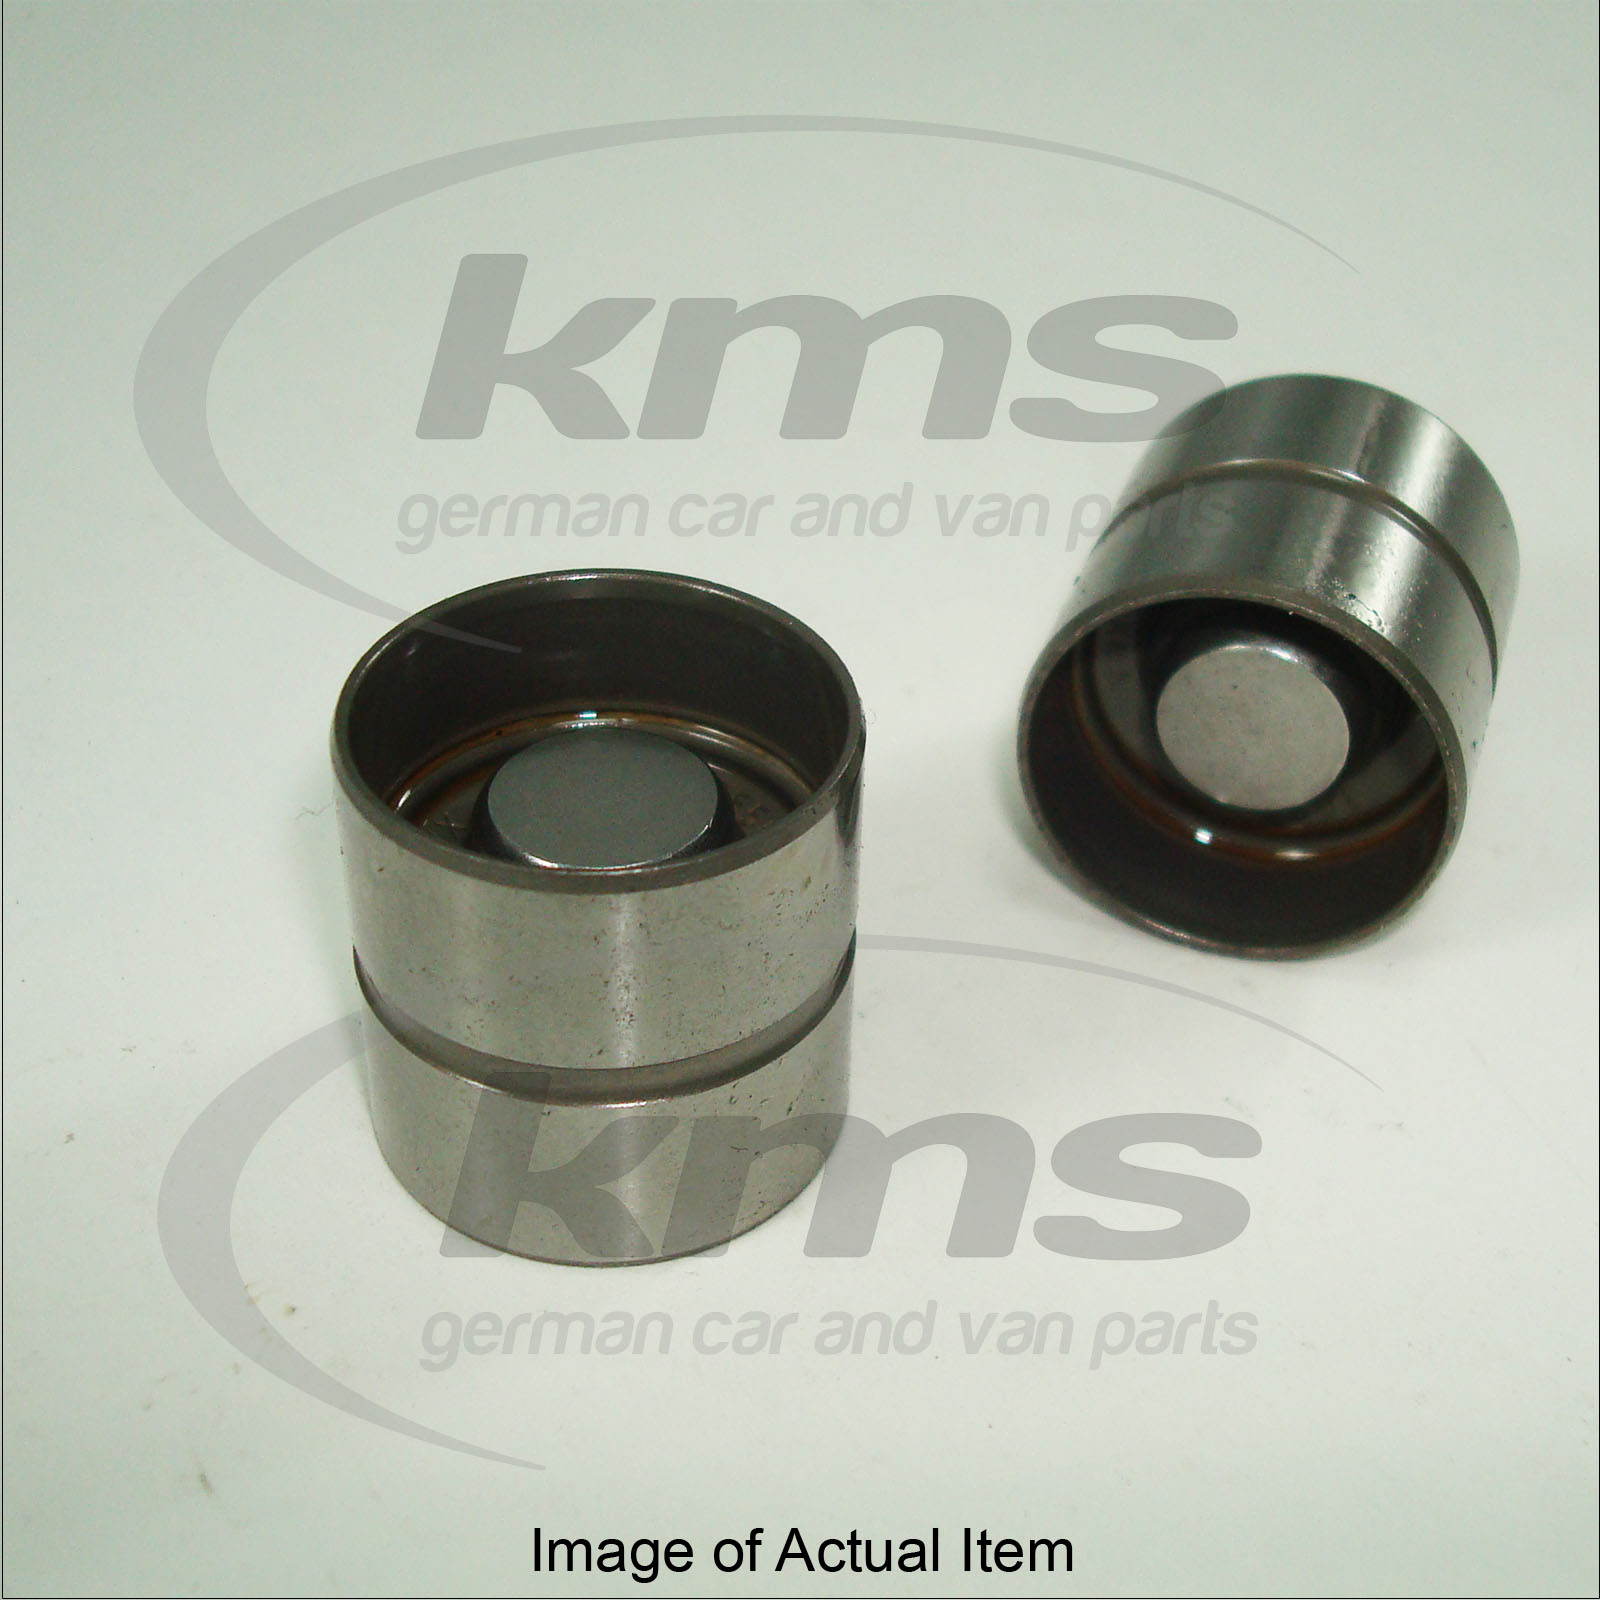 CAM FOLLOWER (HYD) A3,A4,A6,A8,PA4,SH 95- INLET ONLY VW SHARAN 96-10 MPV EQ TOP